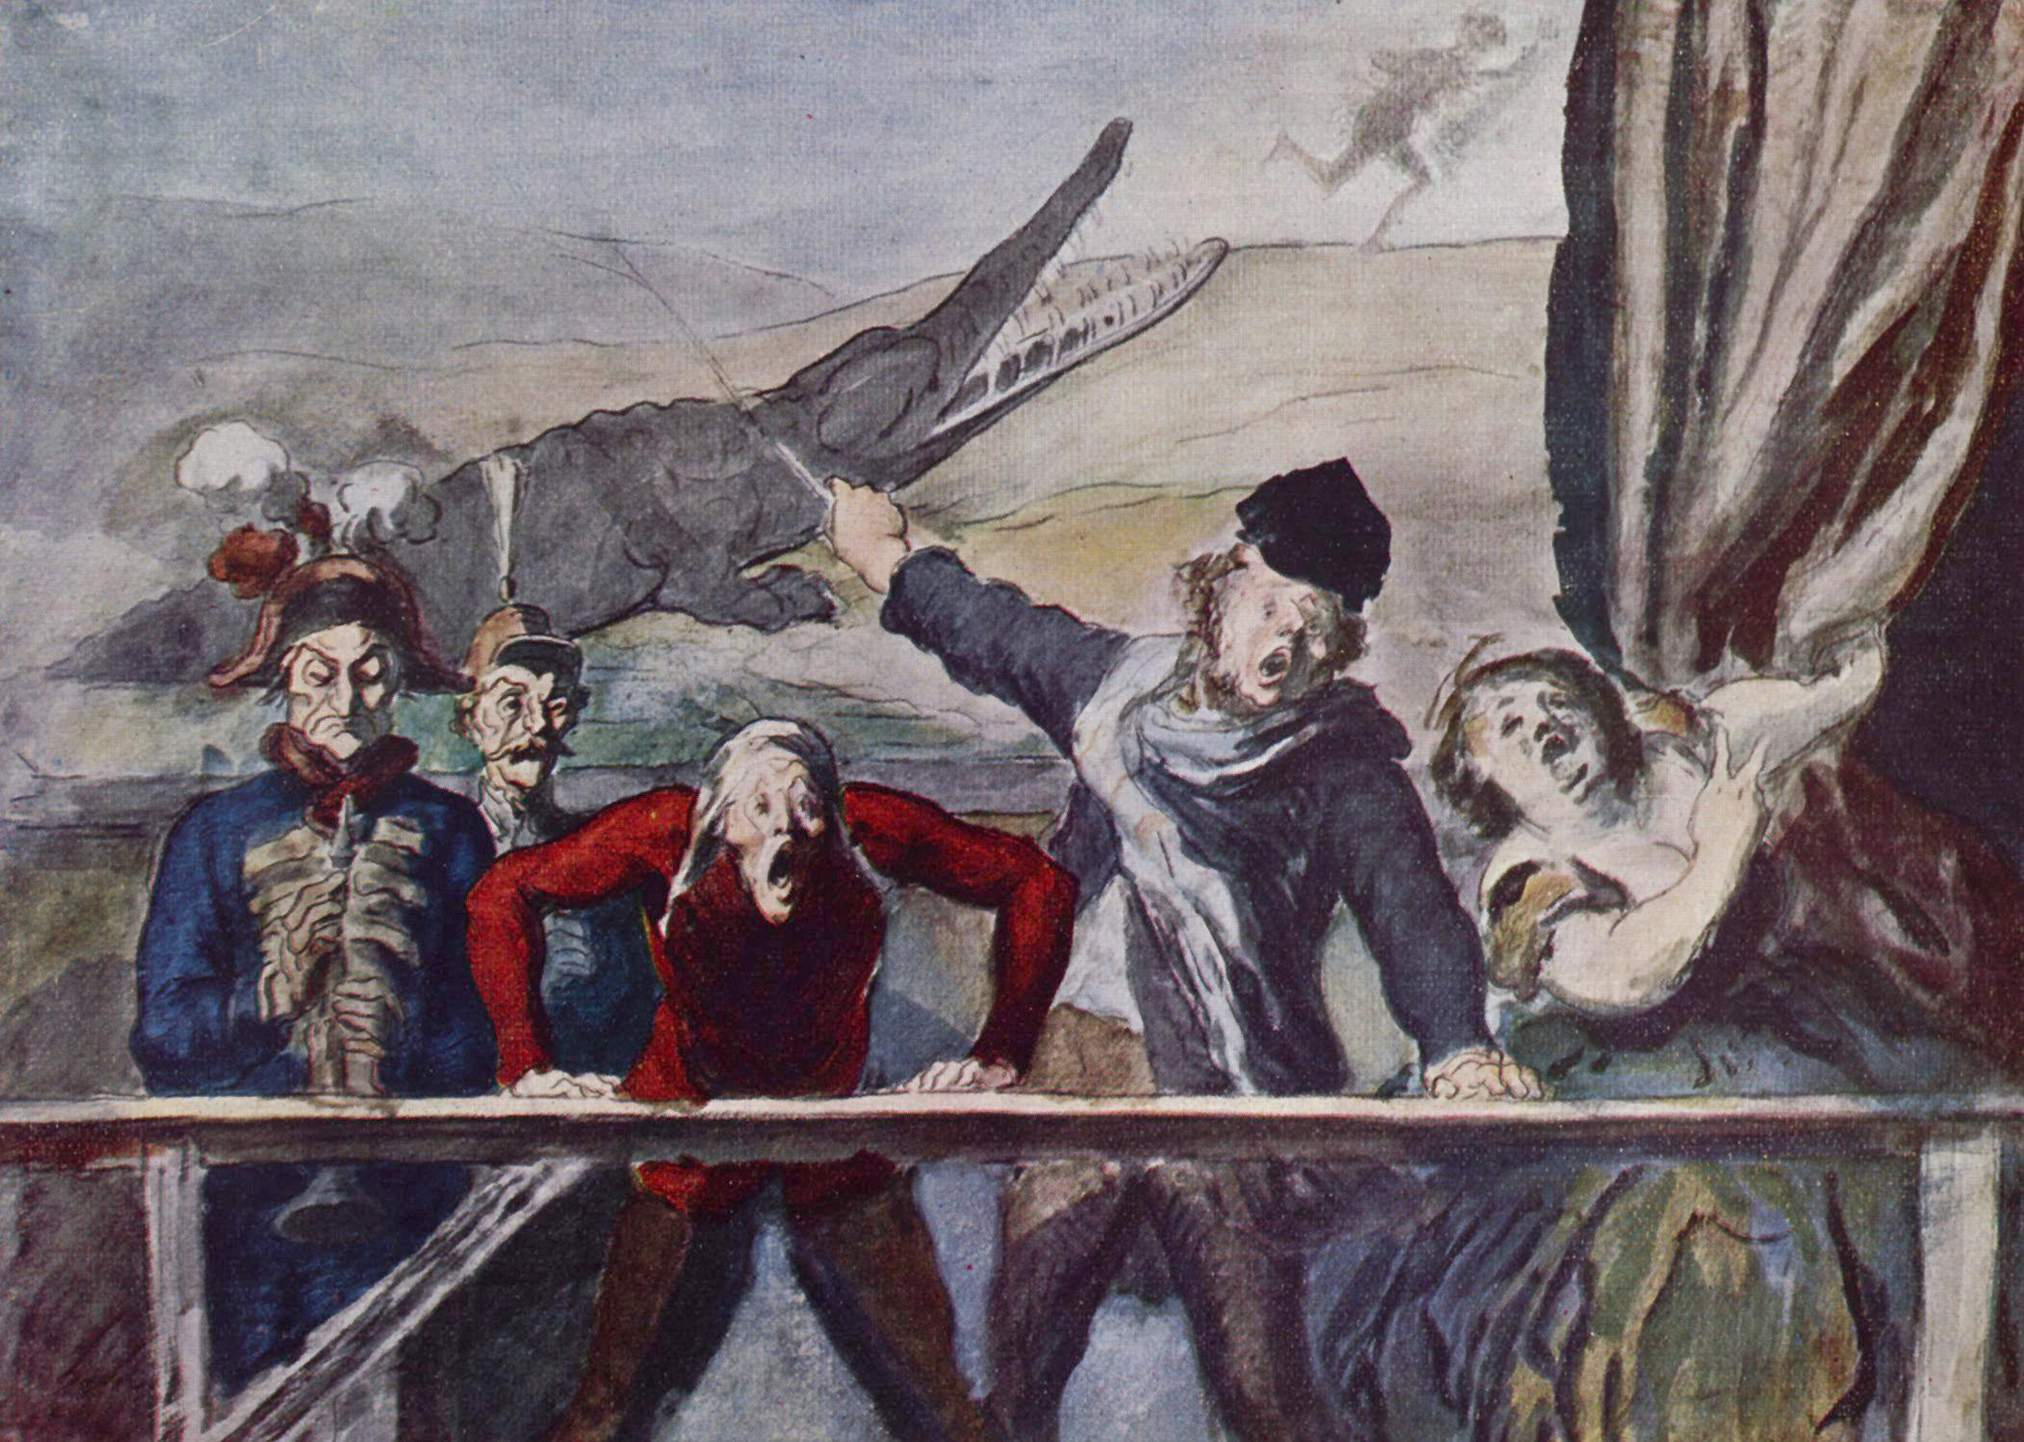 https://uploads4.wikiart.org/images/honore-daumier/the-carnival-parade.jpg